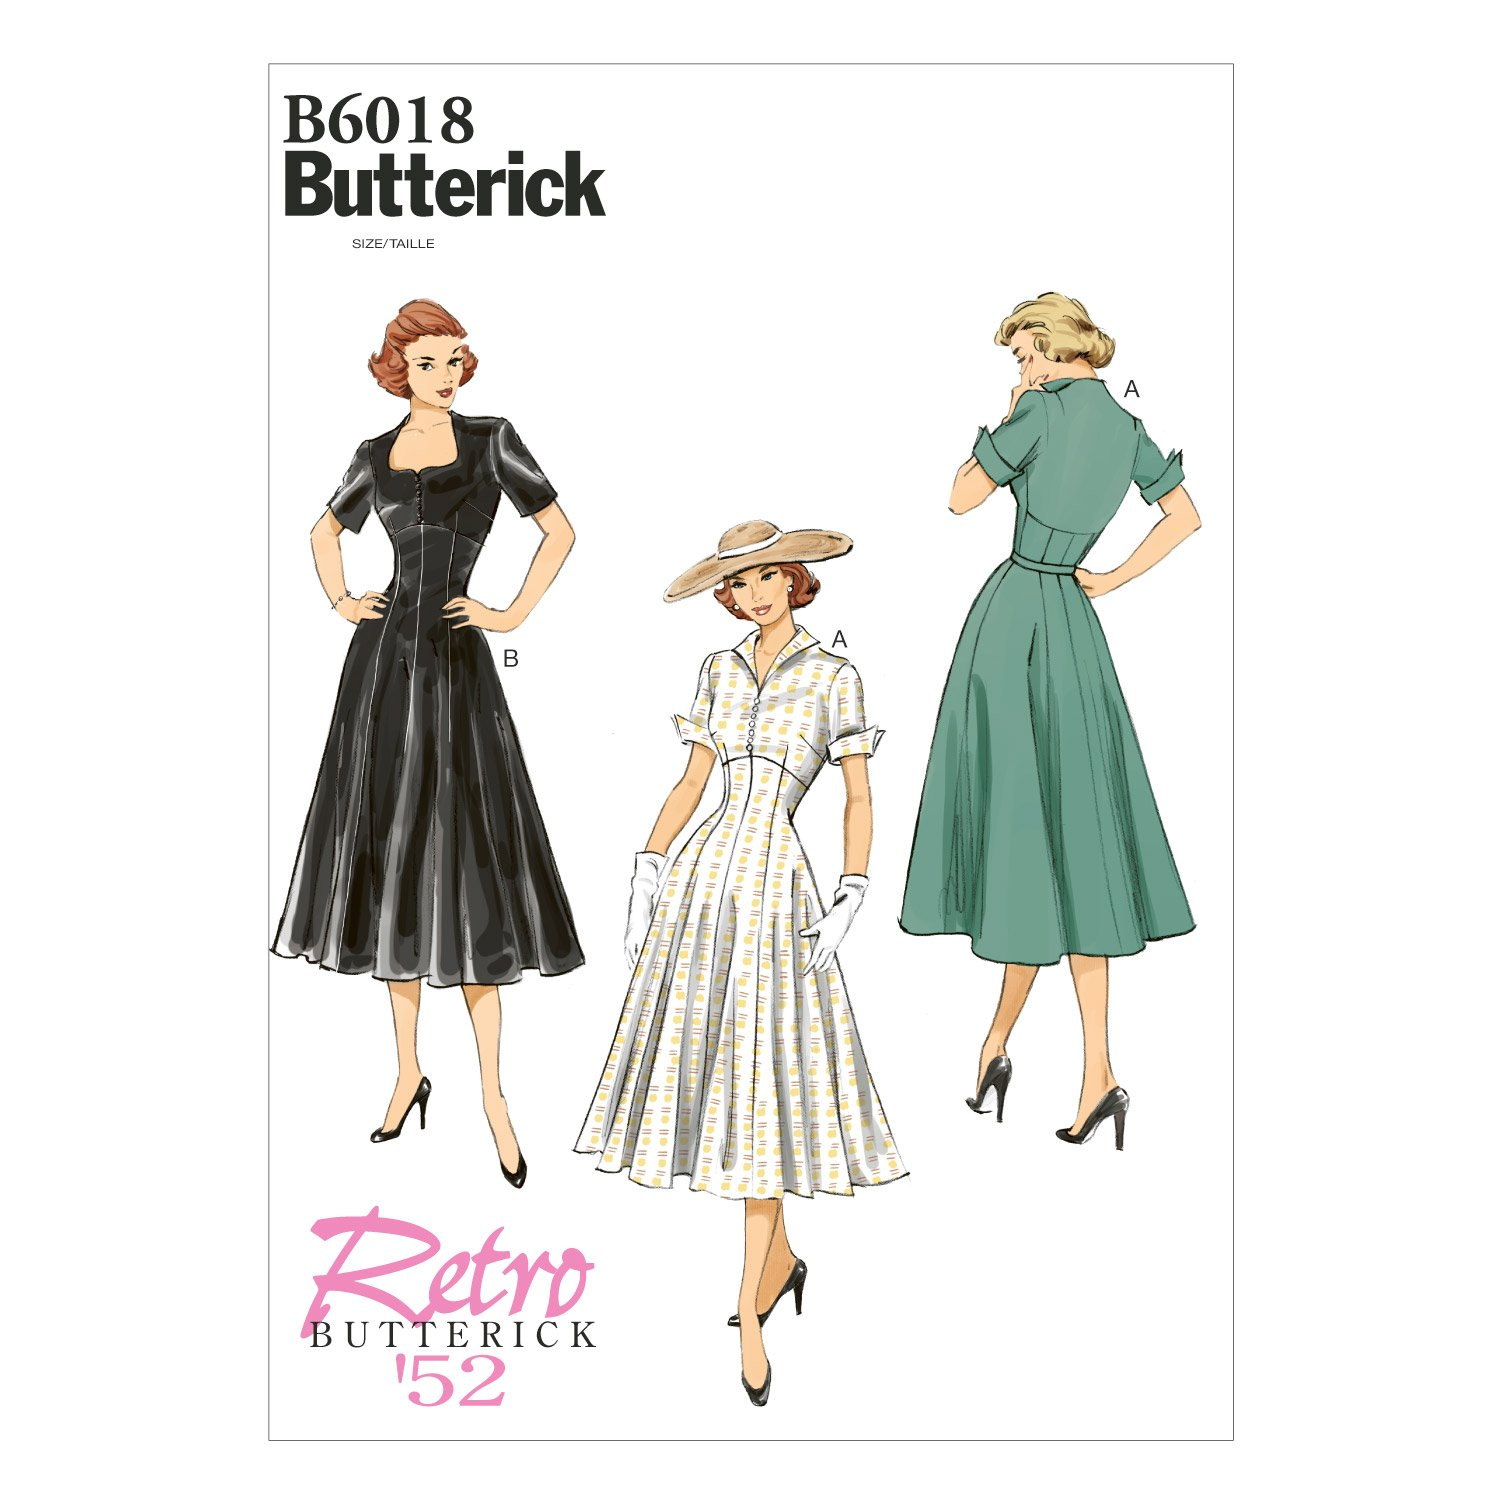 1950s Sewing Patterns | Swing and Wiggle Dresses, Skirts 1952 Butterick Patterns B6018A50 Misses Dress Sewing Template Size A5 (6-8-10-12-14) $7.94 AT vintagedancer.com